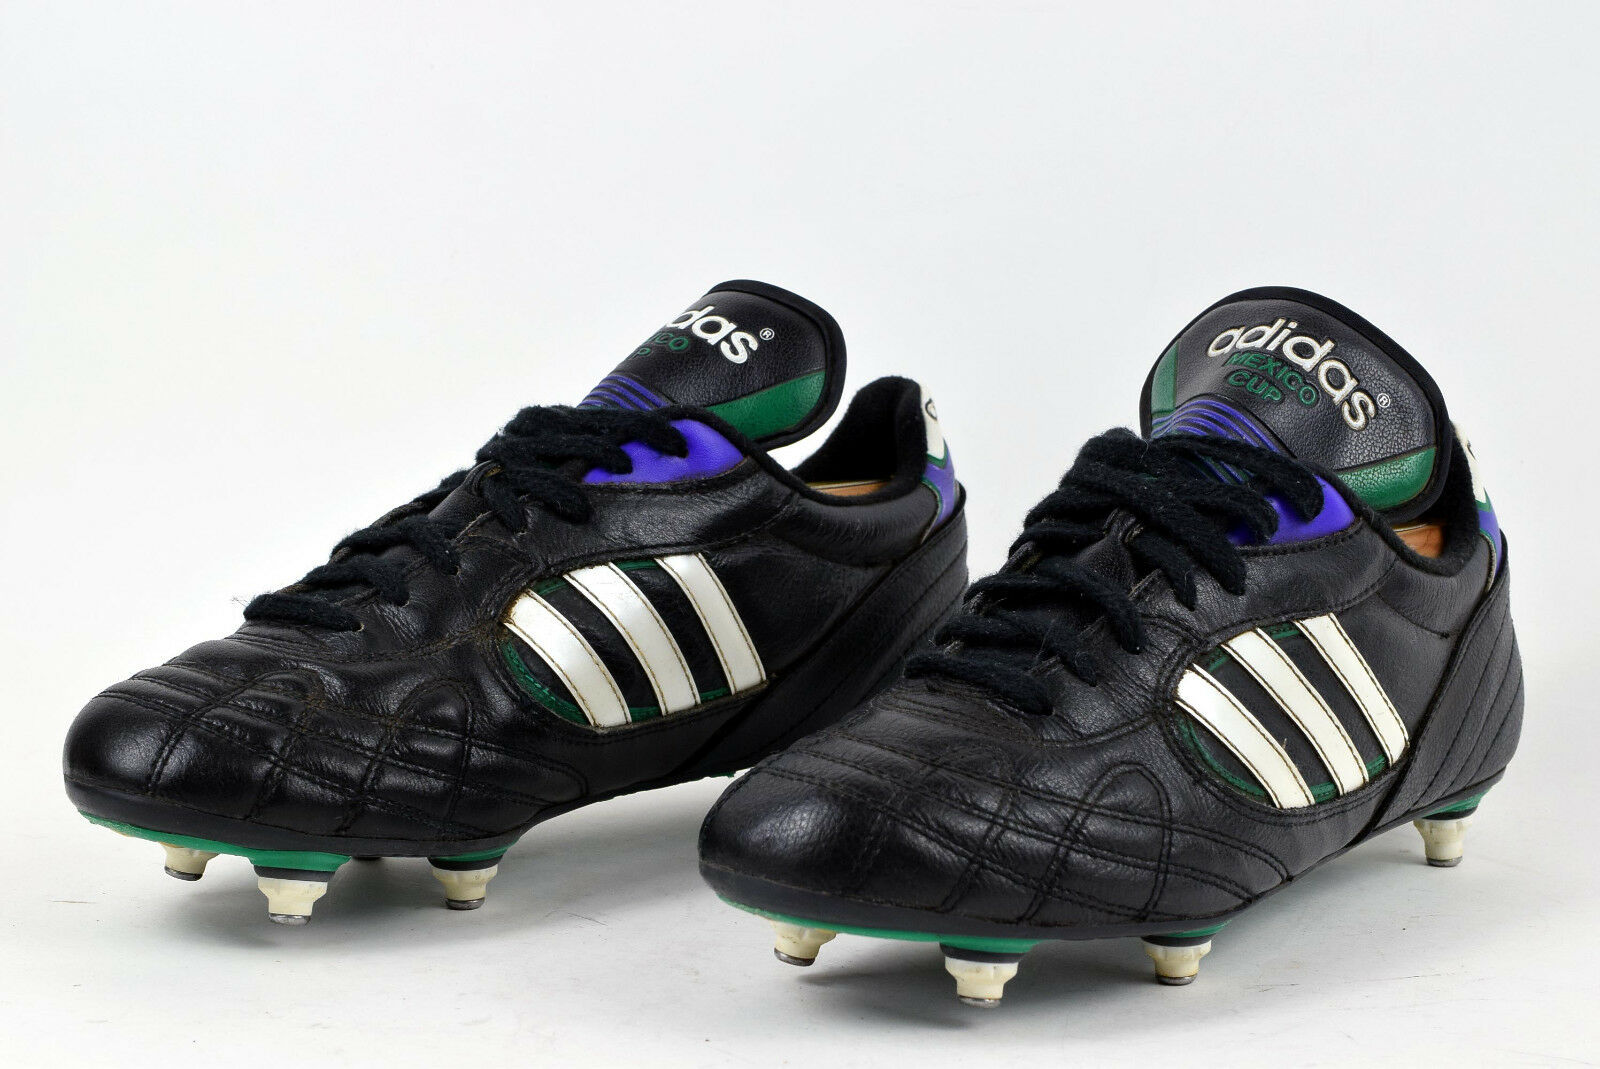 Adidas Mexico Cup Vintage Football Boots size 8.5 Soccer shoes